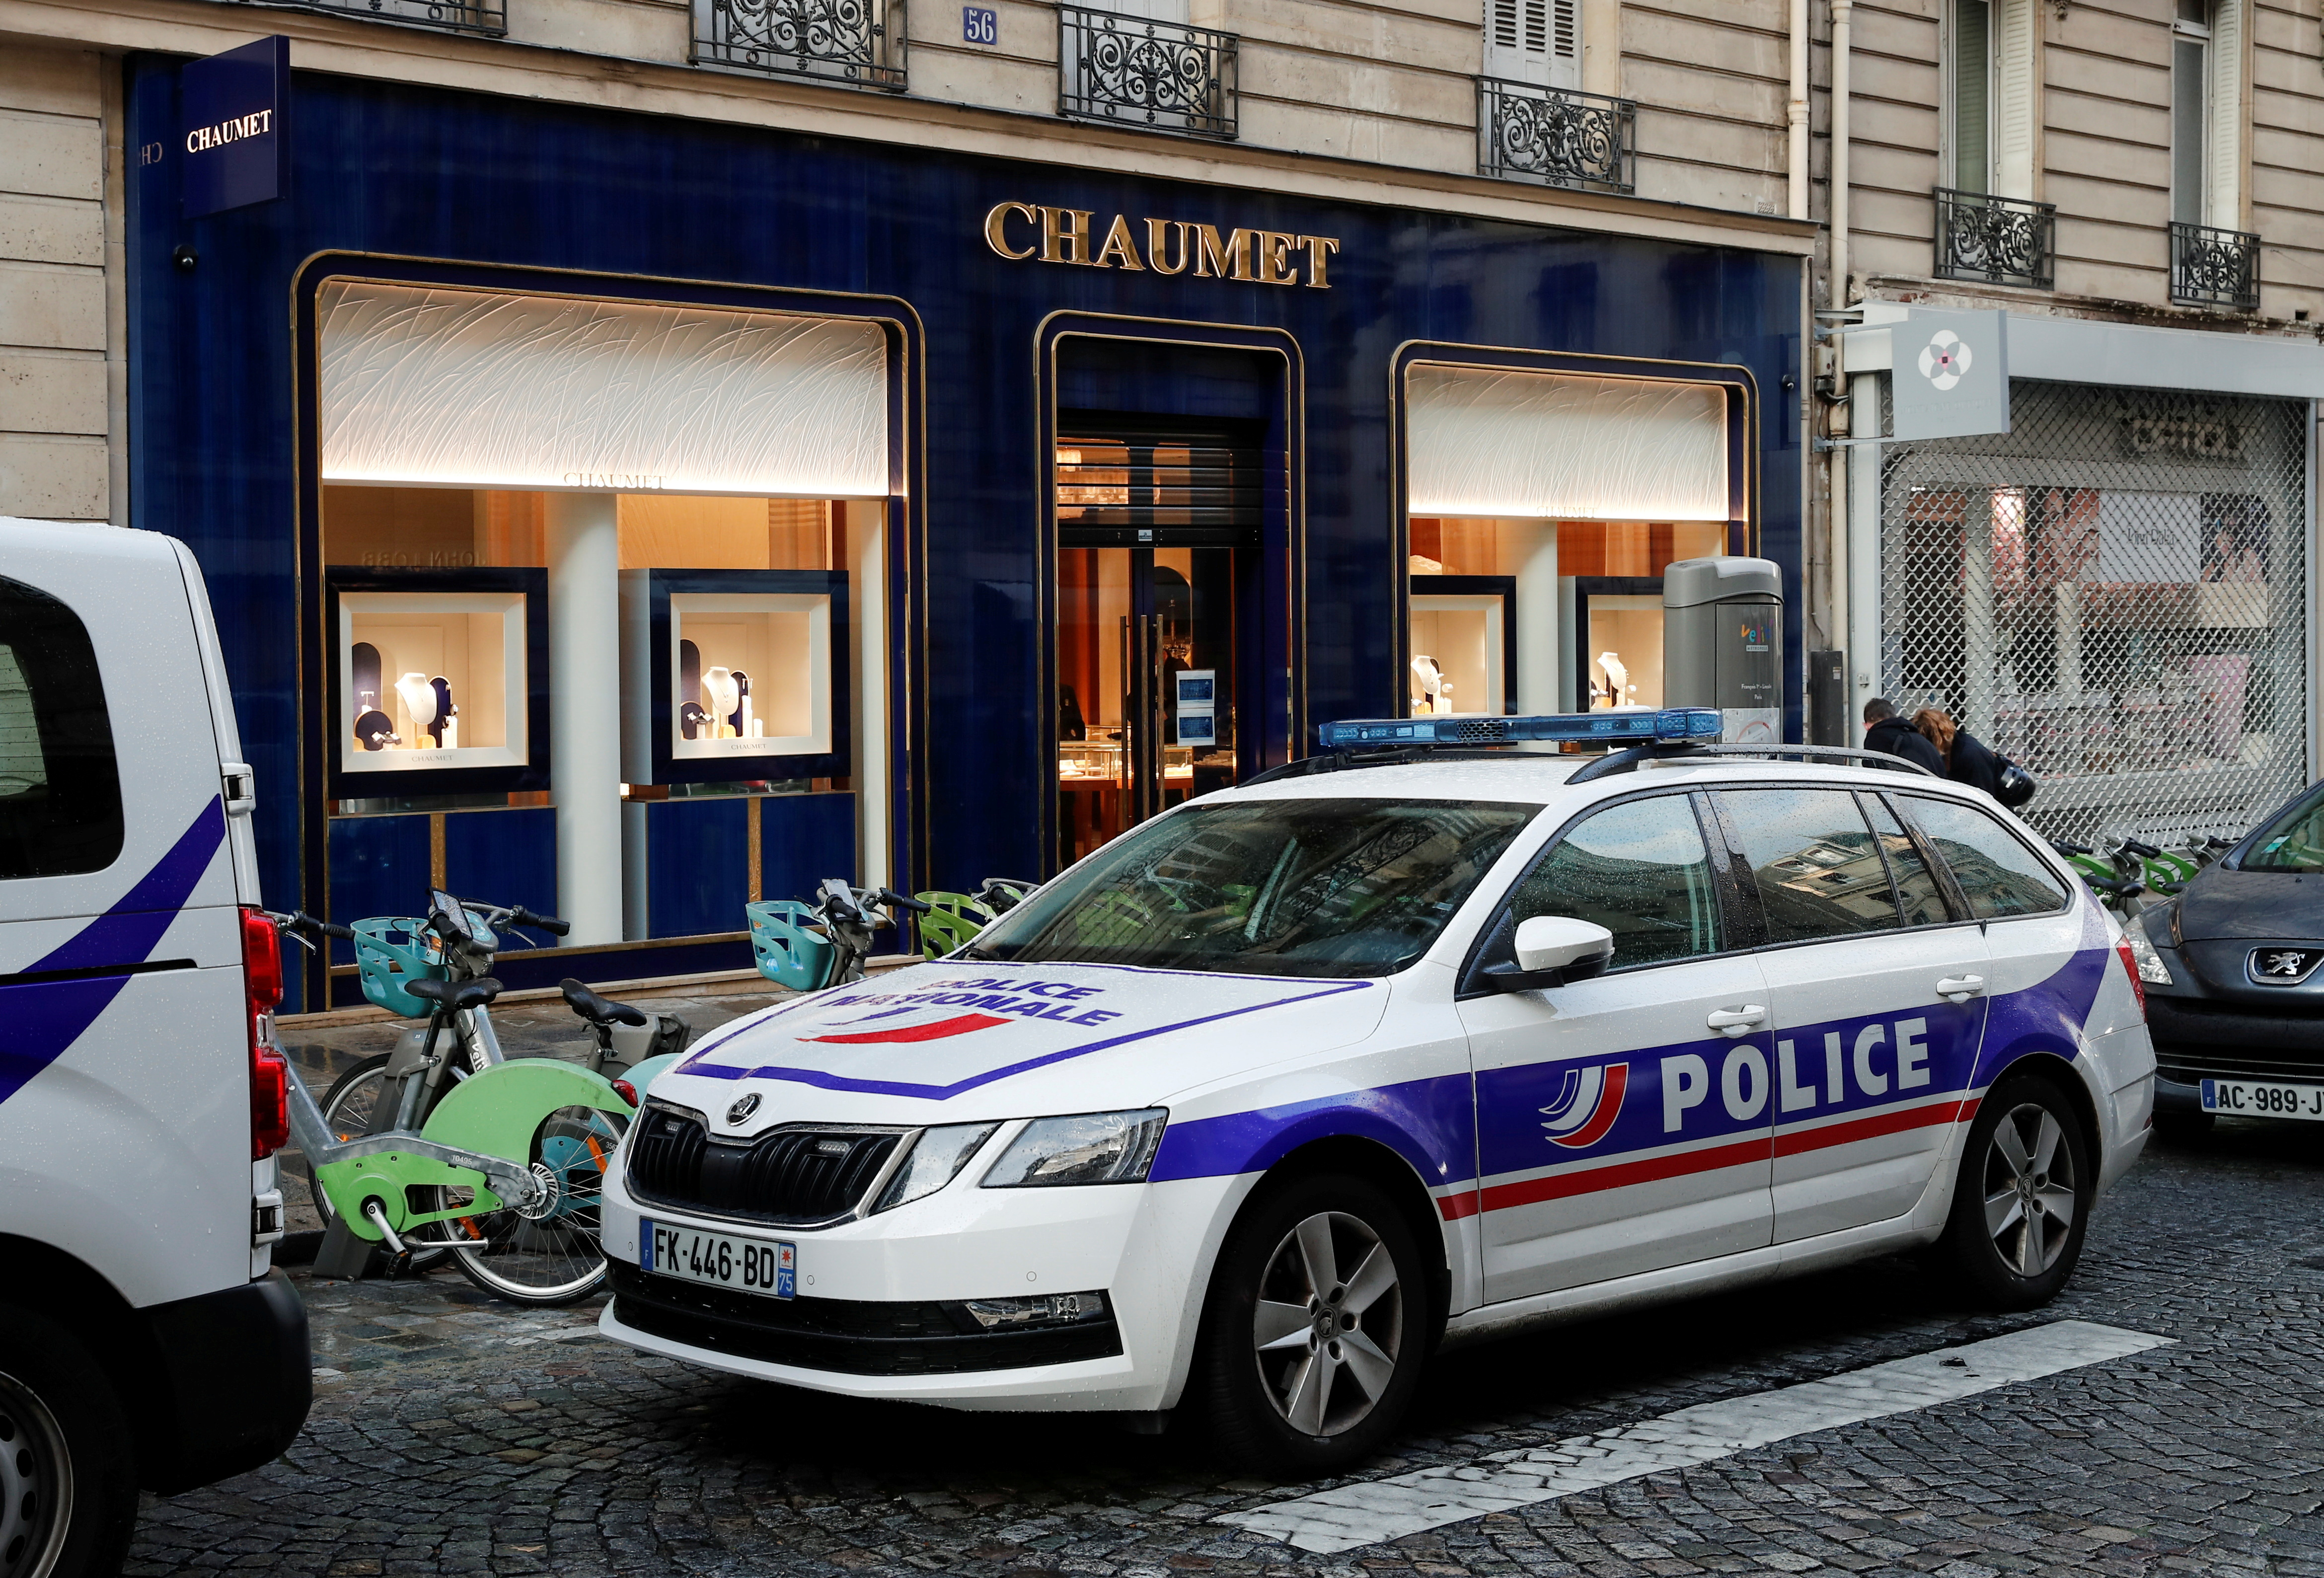 A police vehicle stands outside the Chaumet jewelry store that was targeted by a robbery in Paris, France July 27, 2021. REUTERS/Benoit Tessier/File Photo